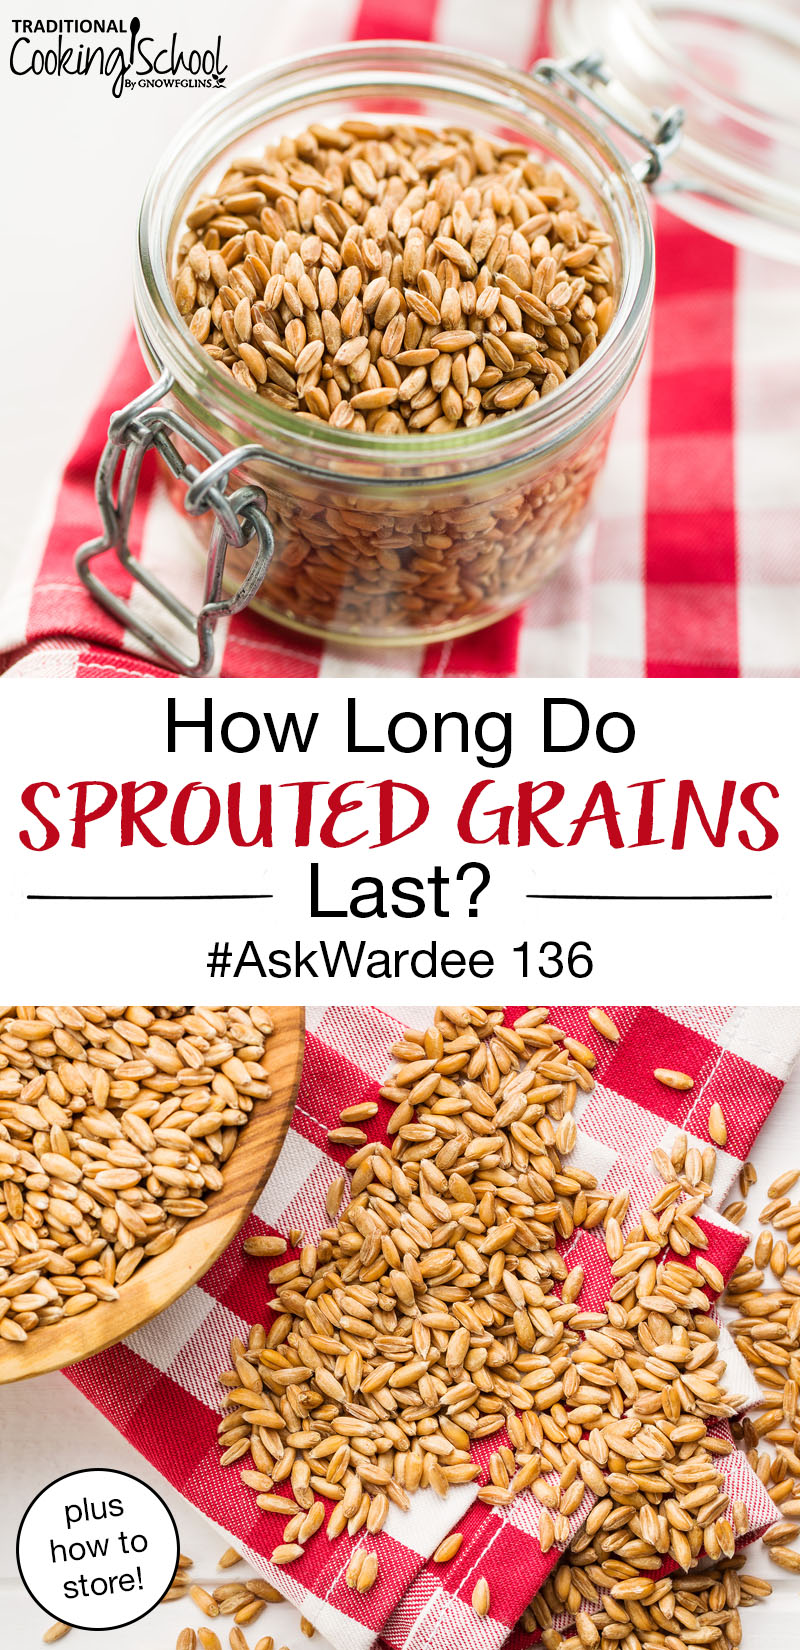 "photo collage of grain berries, in a wooden bowl, in a small glass jar, spilled out onto a red and white checkerboard cloth, with text overlay: ""How Long Do Sprouted Grains Last? (and how to store!) #AskWardee 136"""